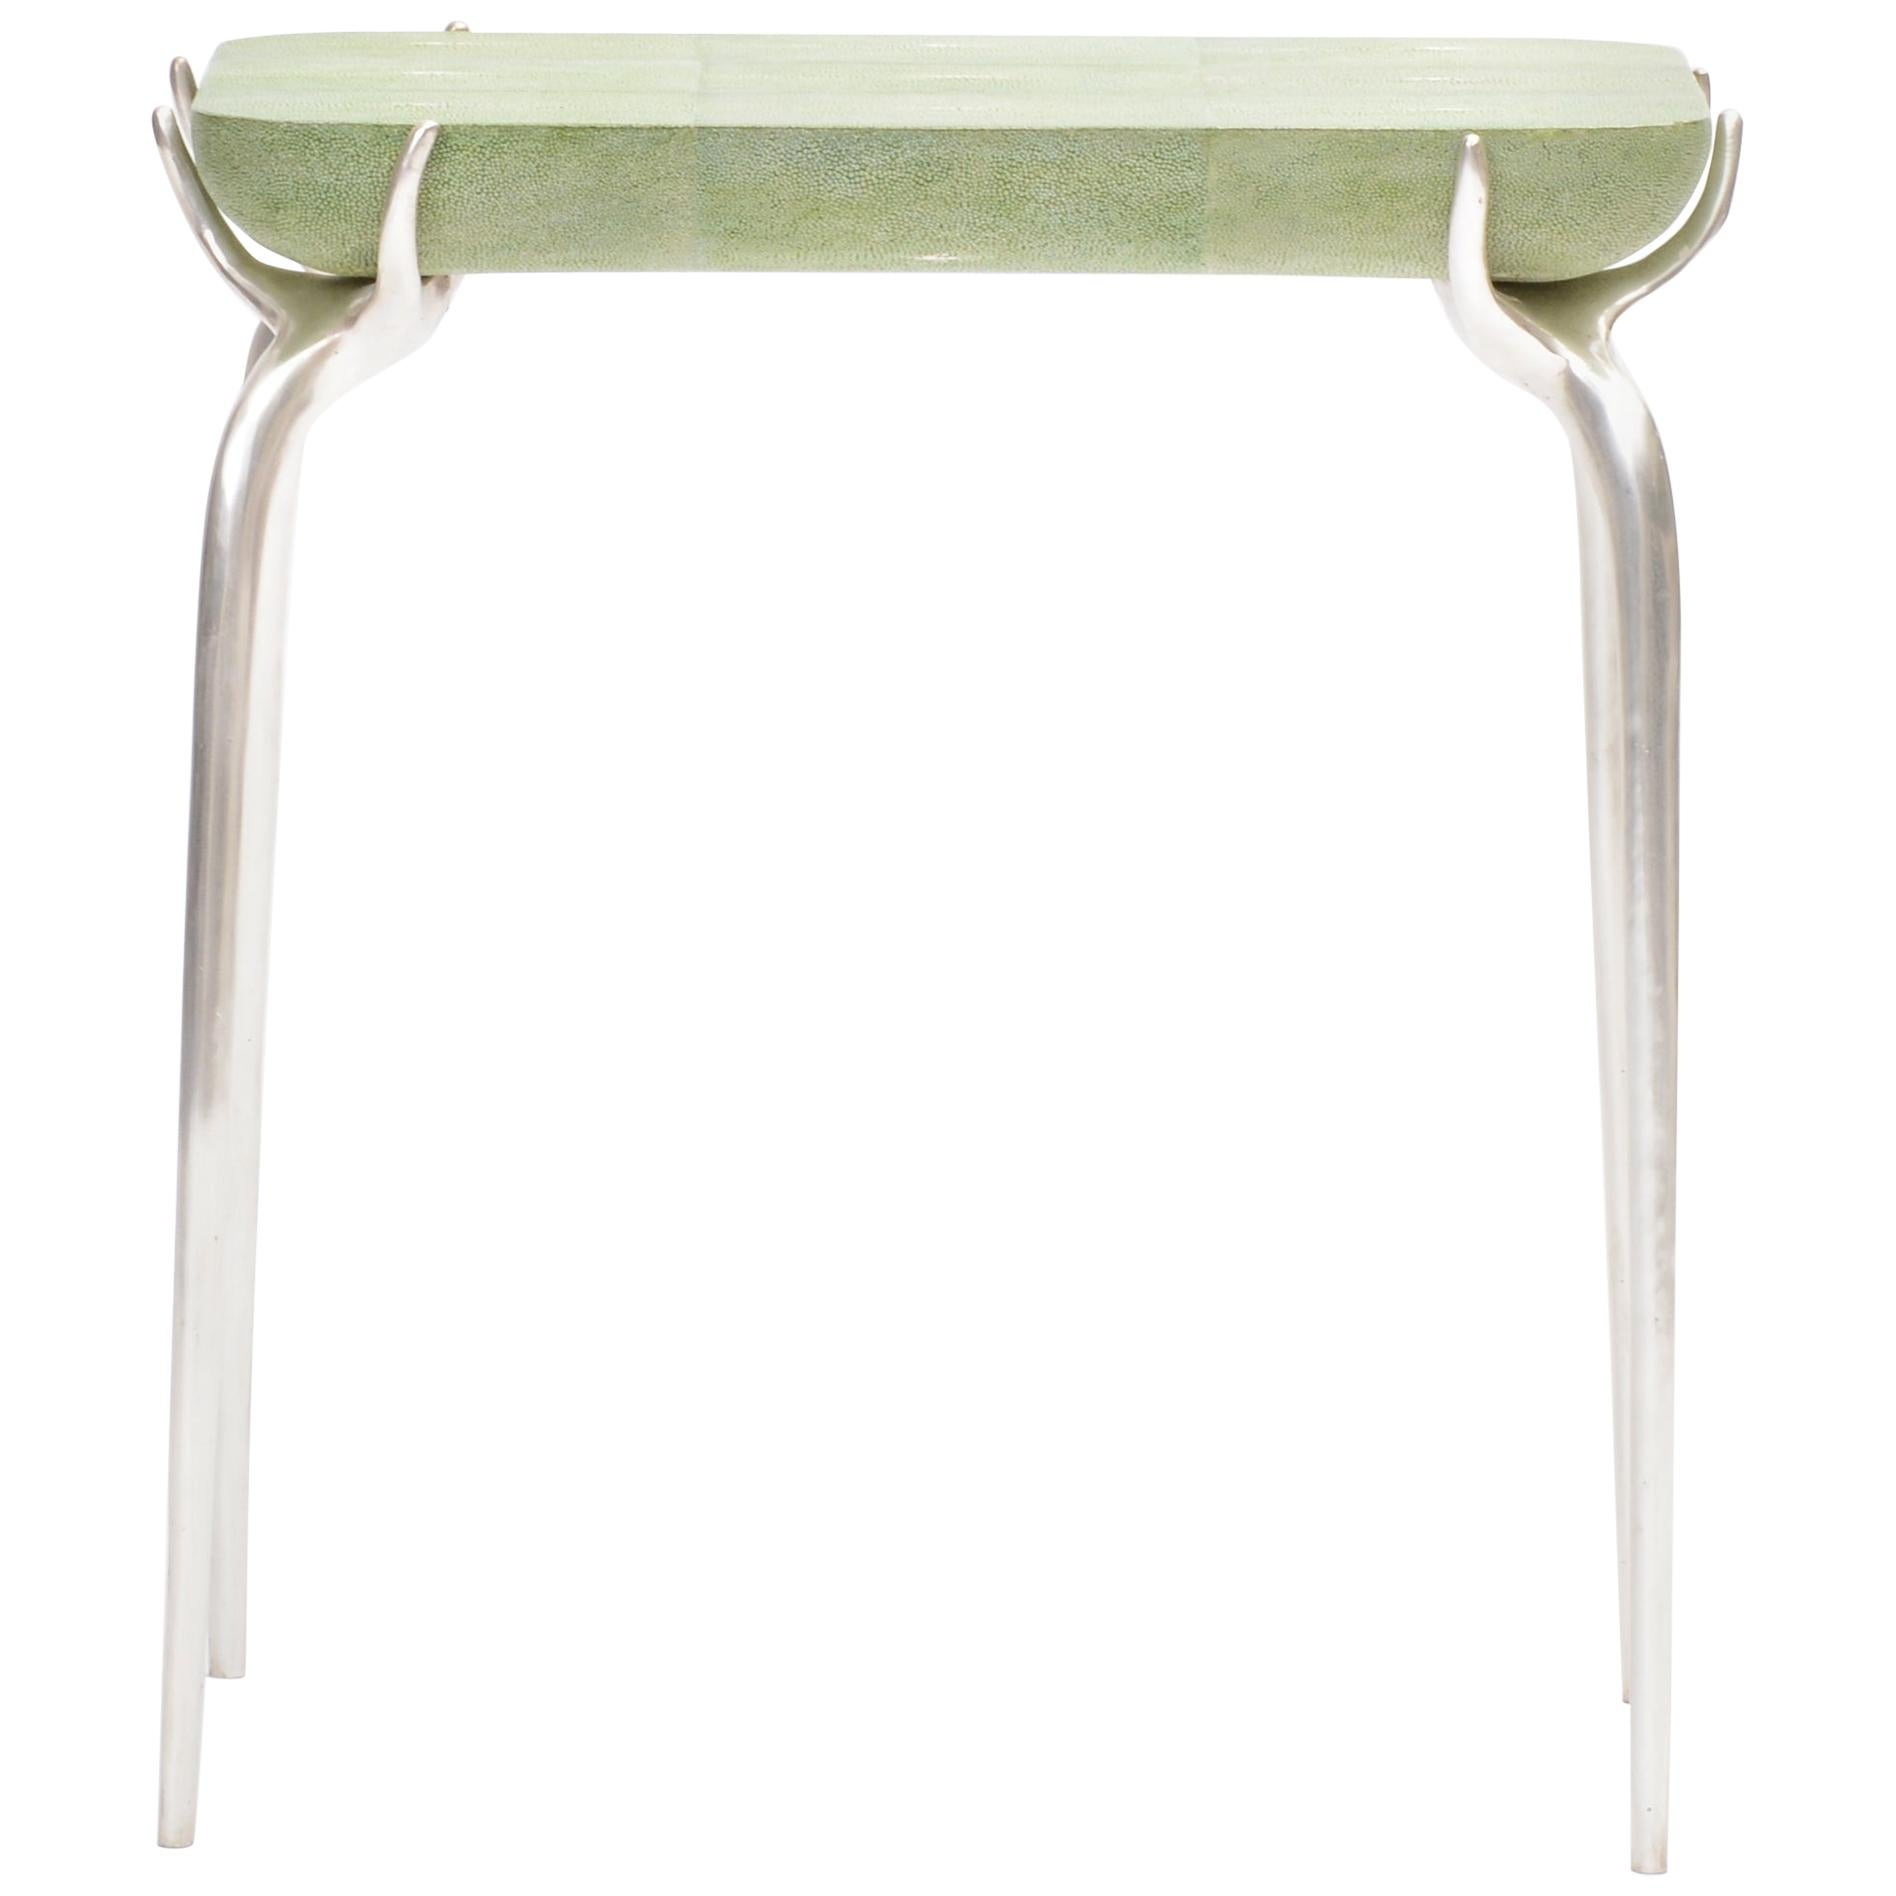 Bronze with Silver Leaf Side Table with Green Shagreen Top by Elan Atelier